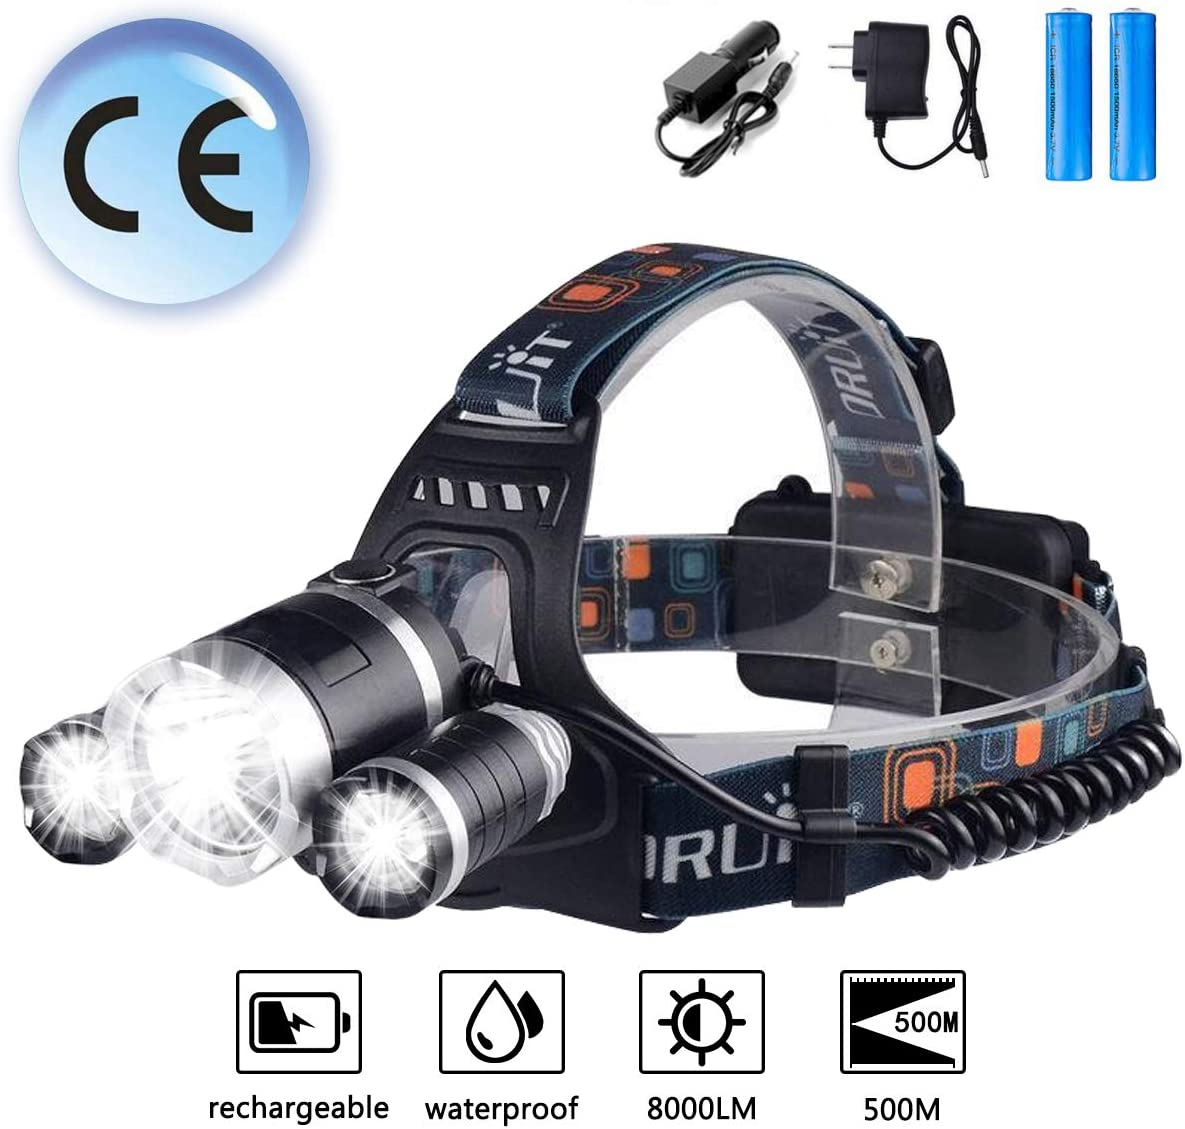 Zingiber LED Rechargeable Headlamp, 8000 Lumen Headlight, 100 Waterproof, 90 Adjustable Flashlight, Perfect Head Light for Camping, Hiking, Outdoors